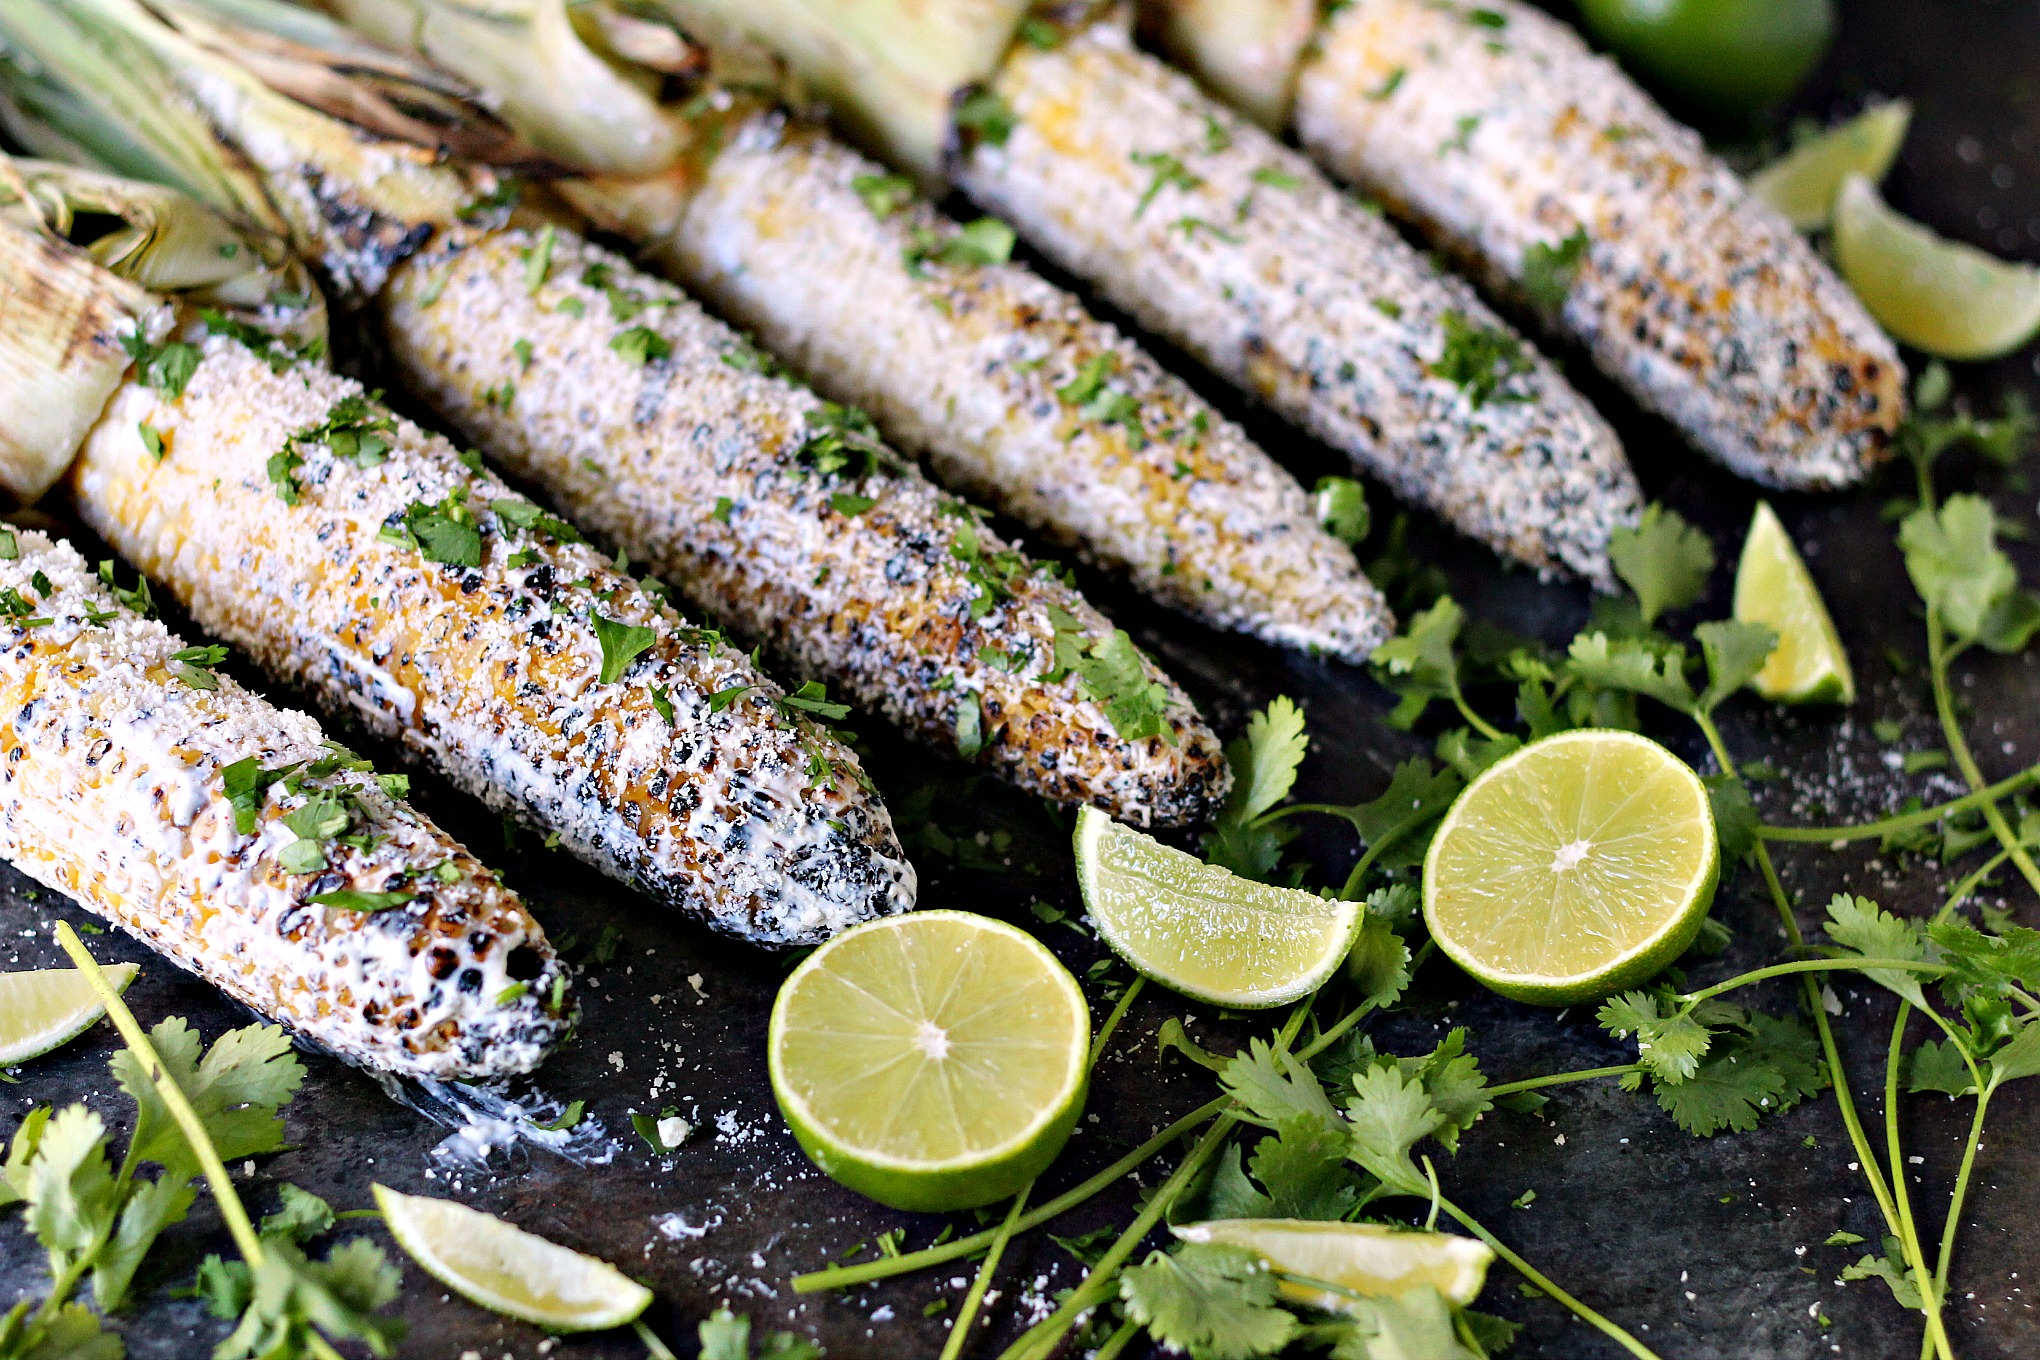 Grilled Mexican Street Corn (Elotes) ready to be served.